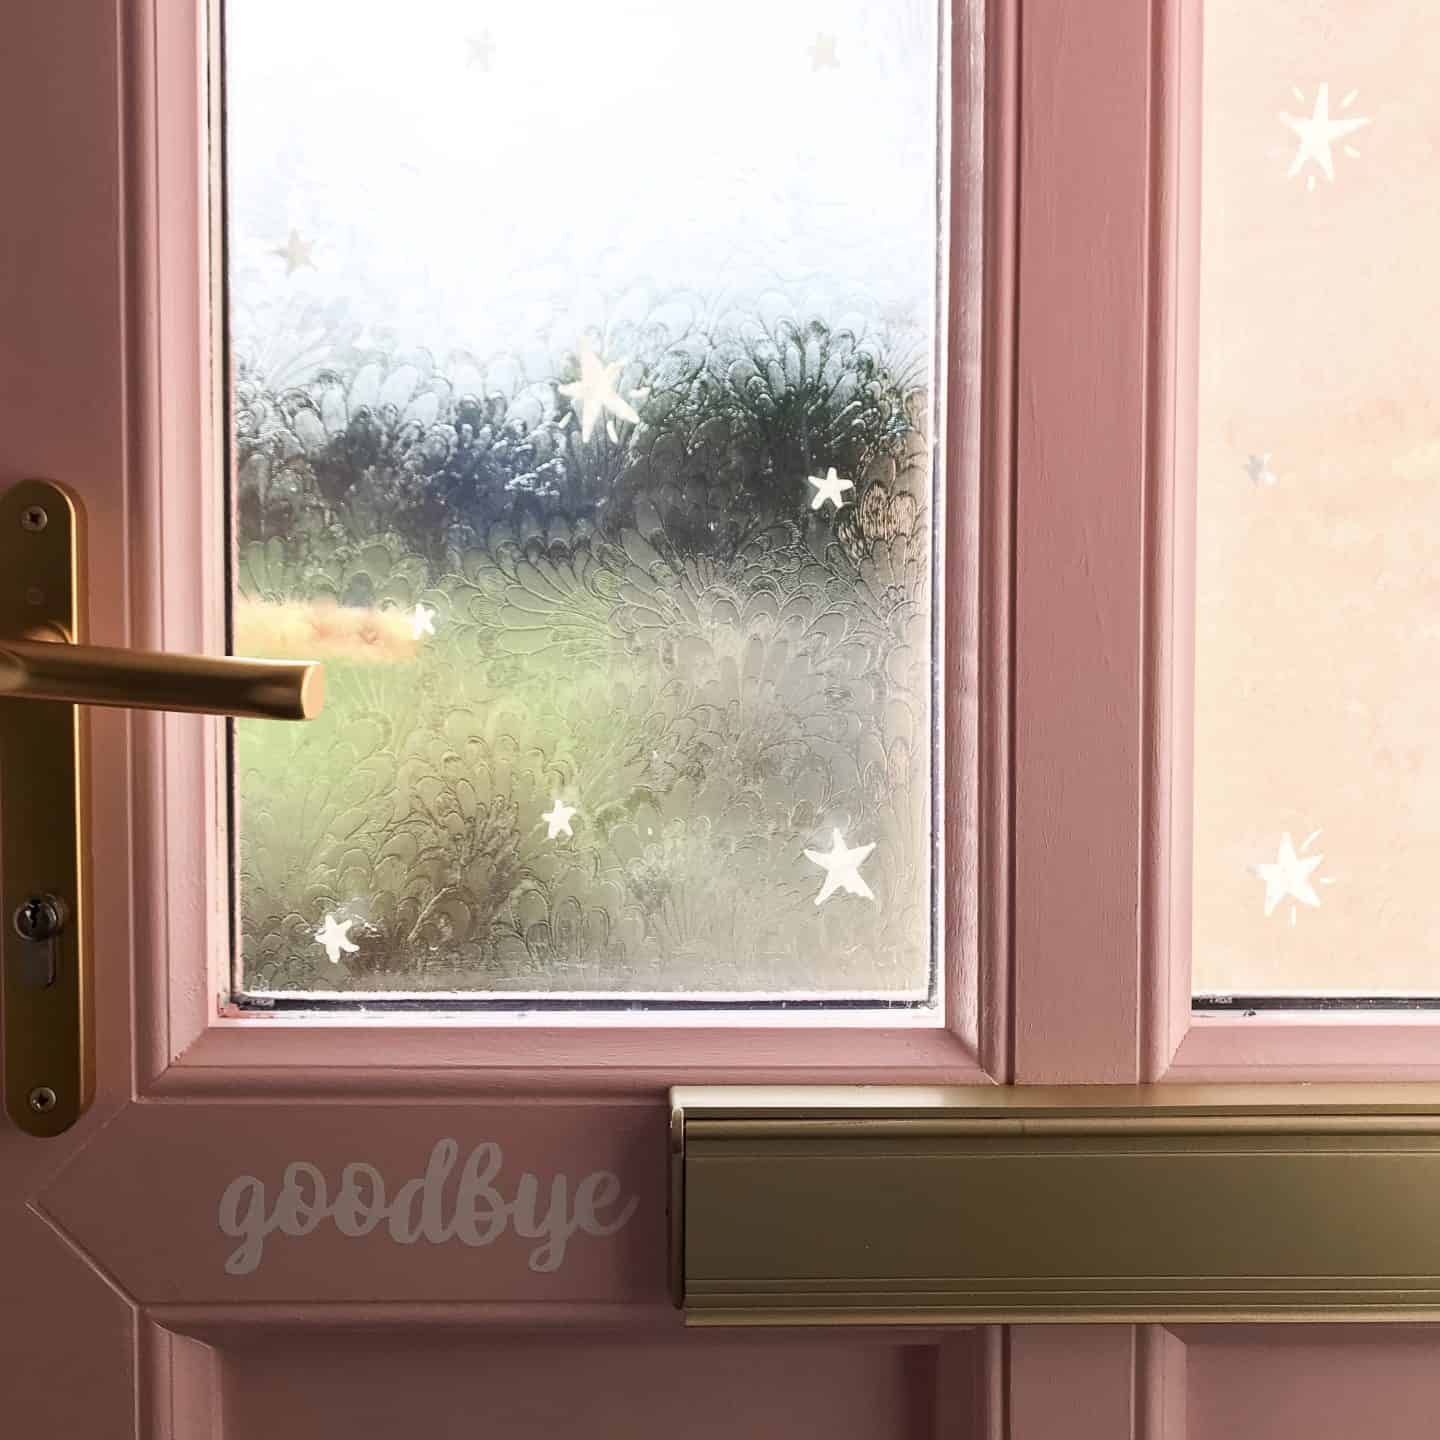 Hand drawn chalk pen stars on a pink front door window